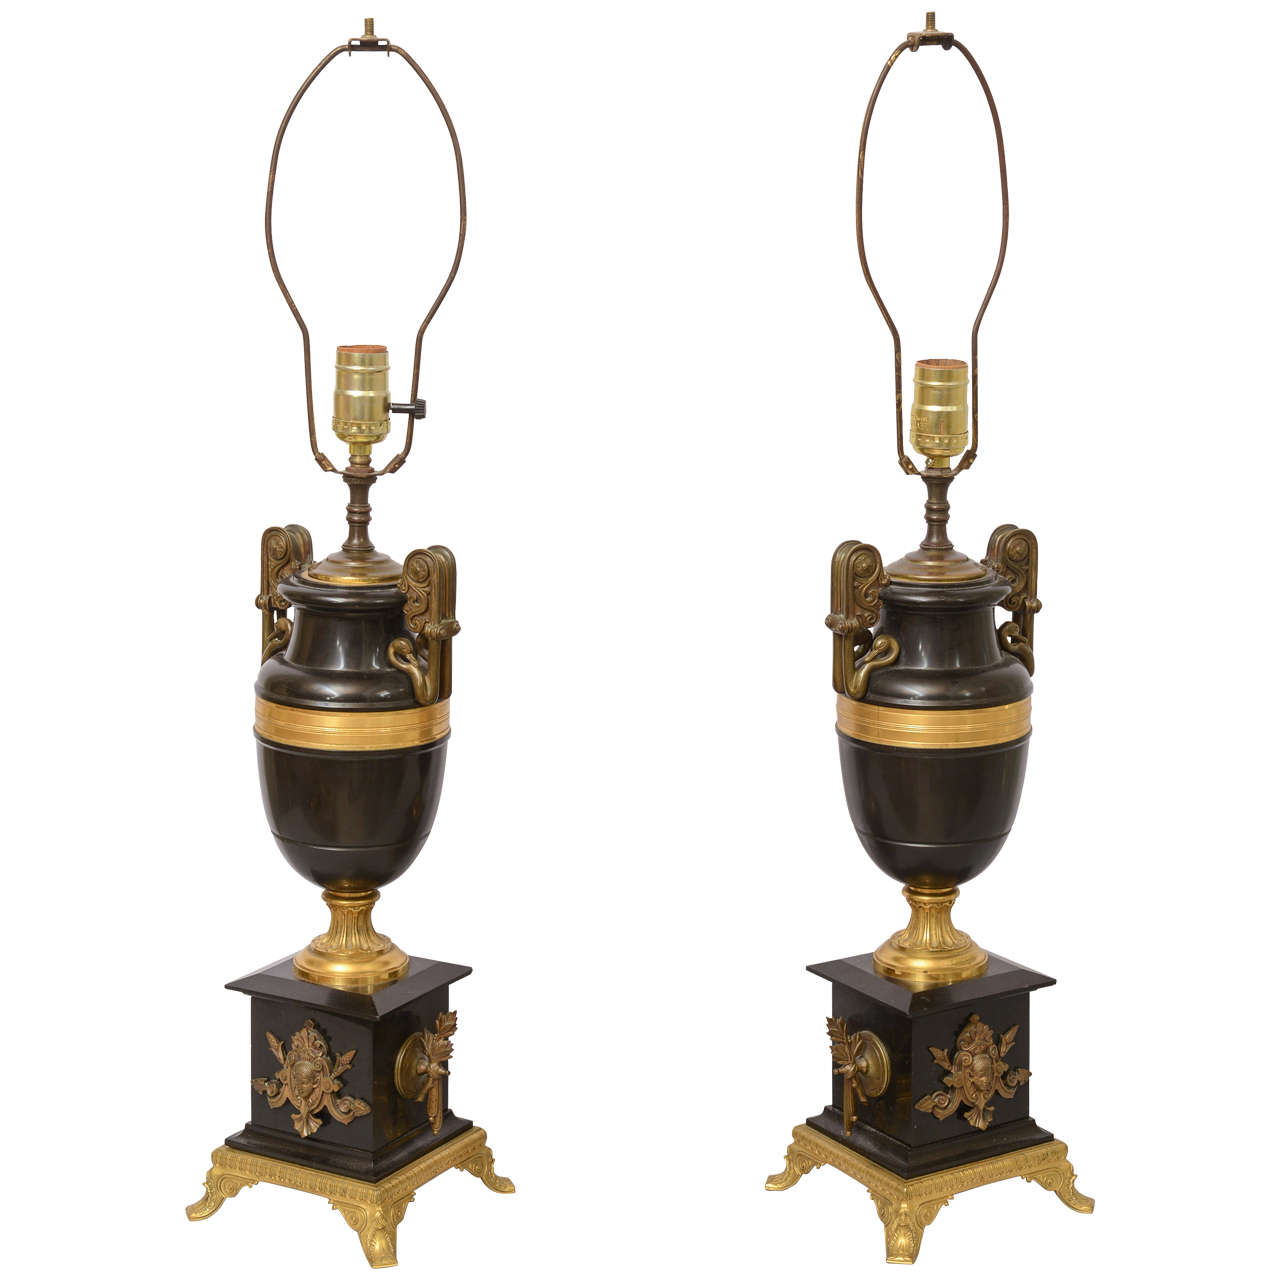 Pair of 19th Century French Neoclassical Urn Lamps